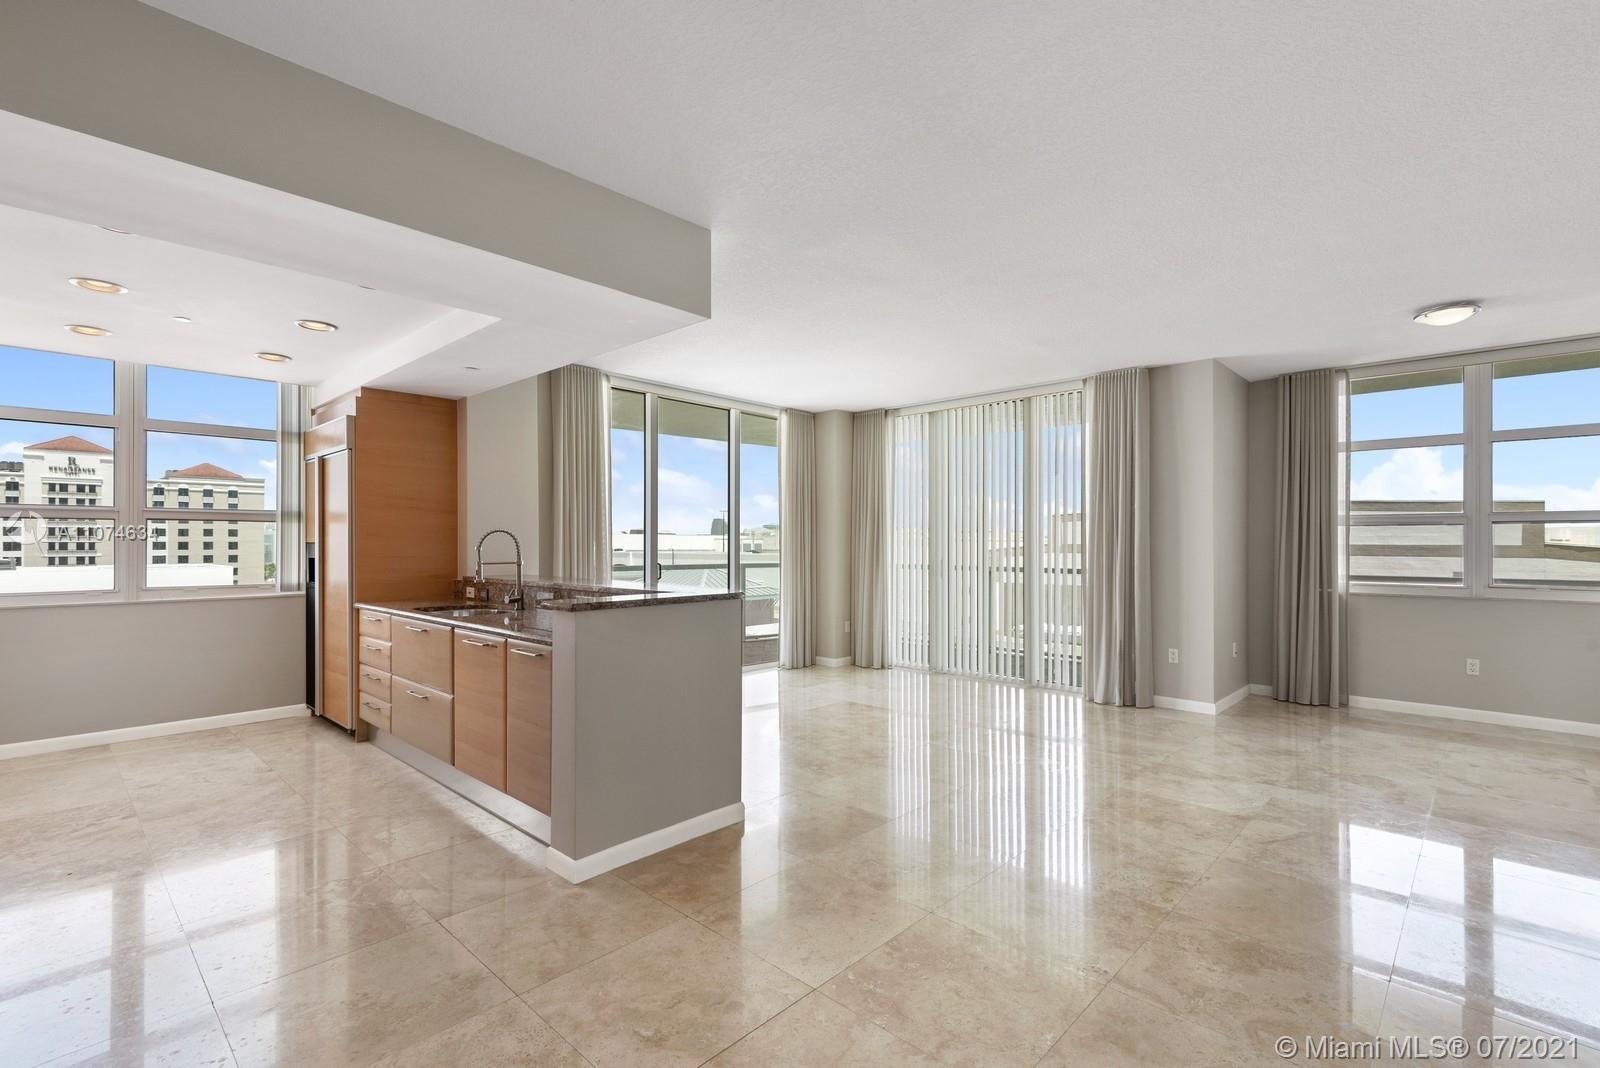 Luxury corner condo featuring walls of floor to ceiling glass, polished marble floors, wrap around g